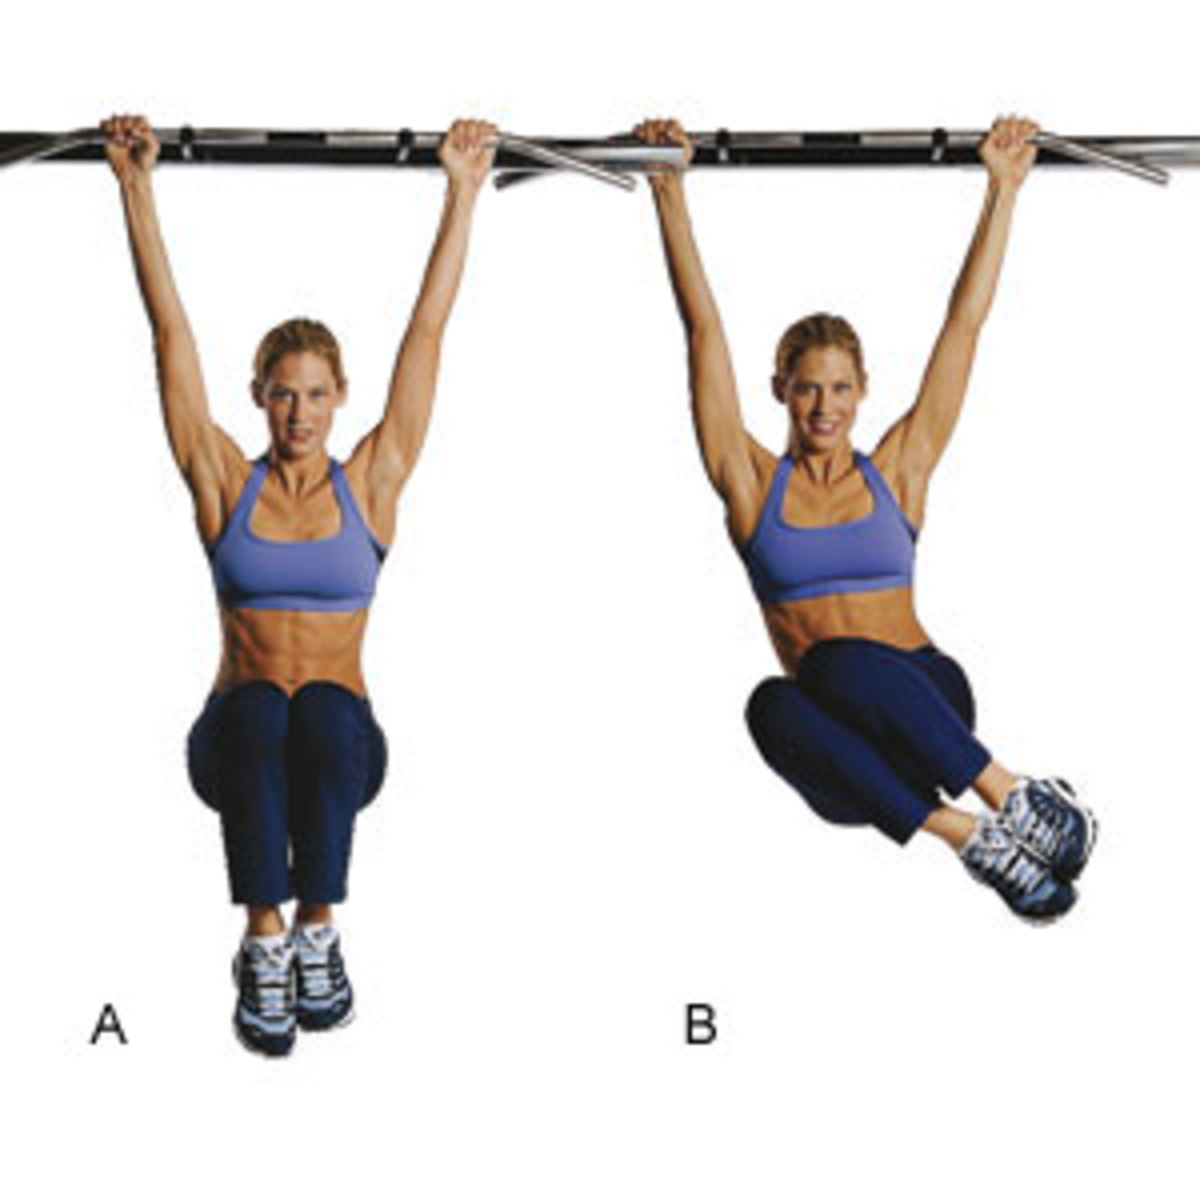 best-exercises-for-six-pack-abs-how-to-do-a-proper-ab-workout-routine